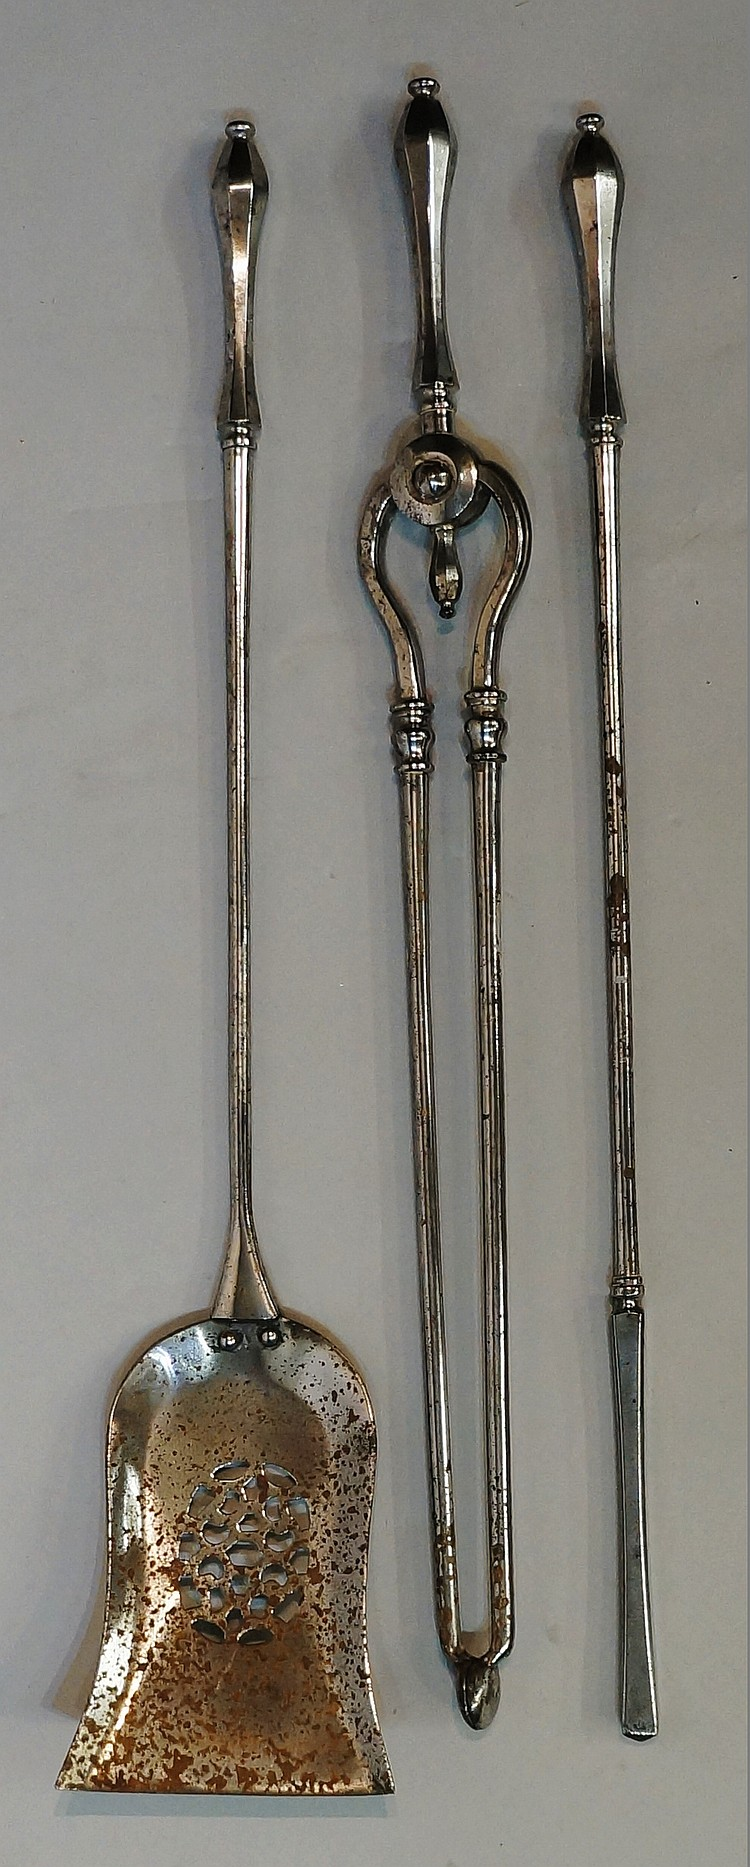 A set of three late 18th / early 19th Century polished steel fire irons com